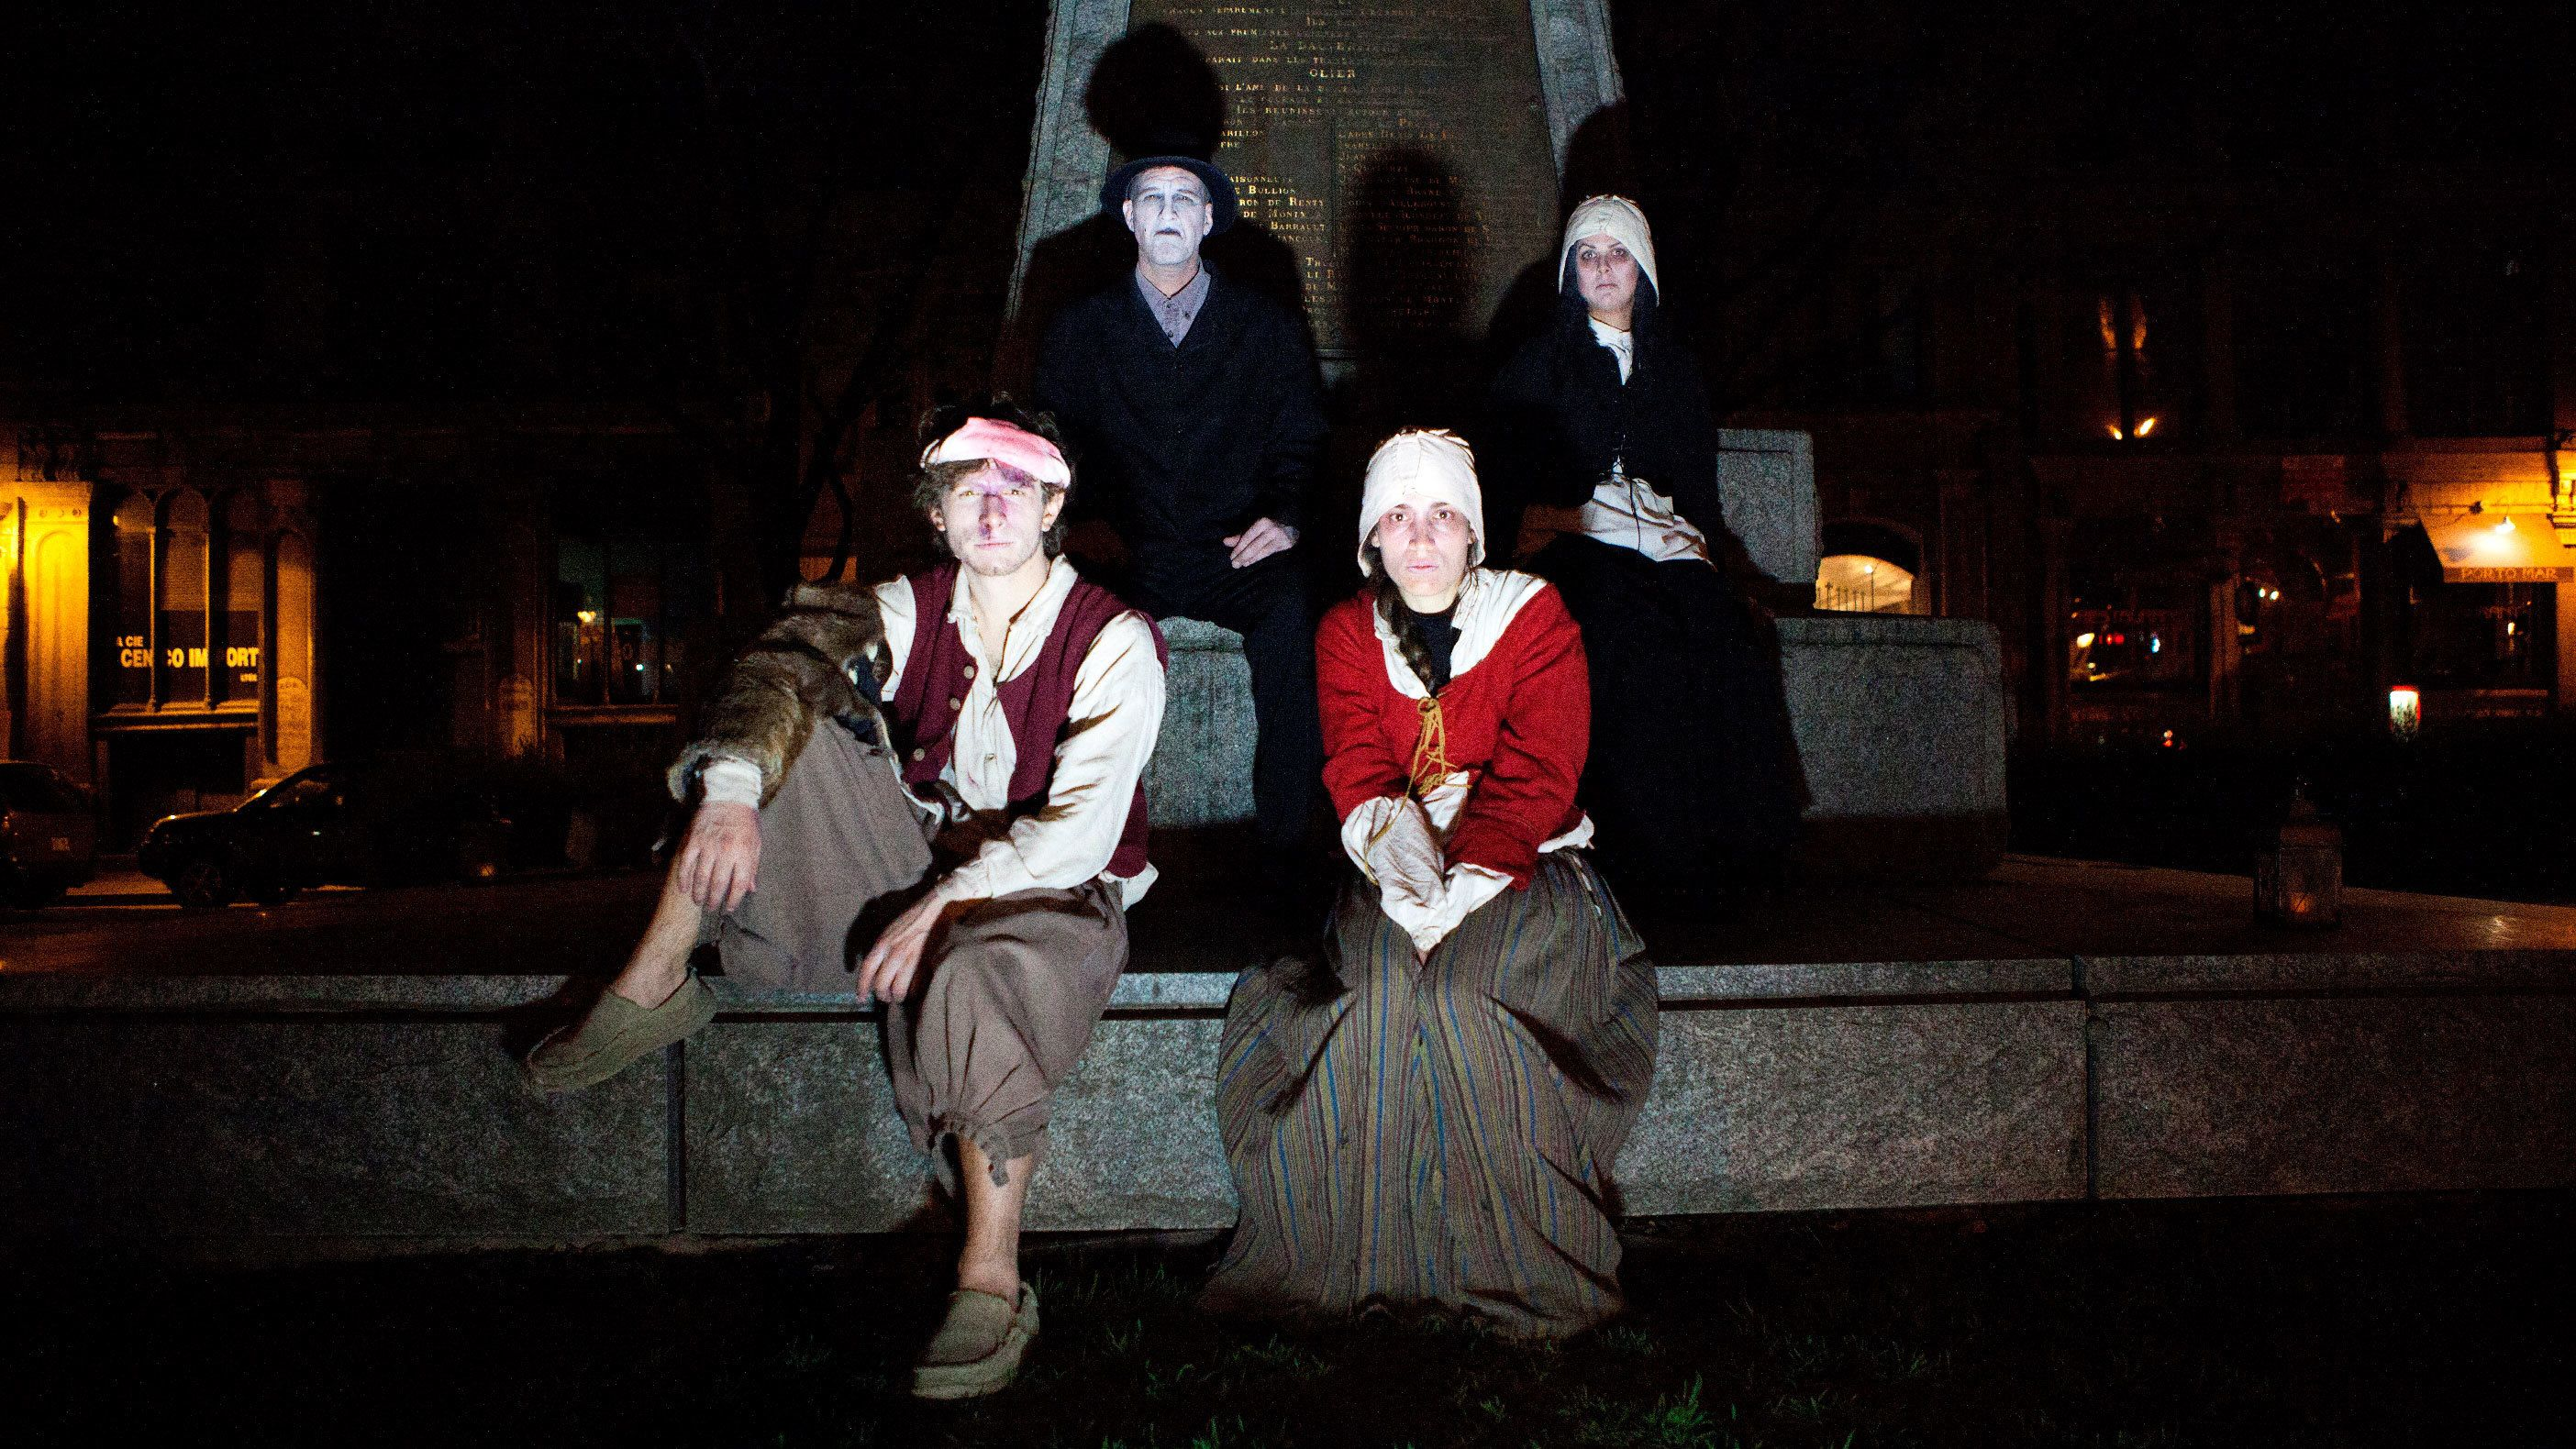 actors dressed in 1880s clothing cast scary shadows in Old Montreal Ghosts & Spirits Walking Tour